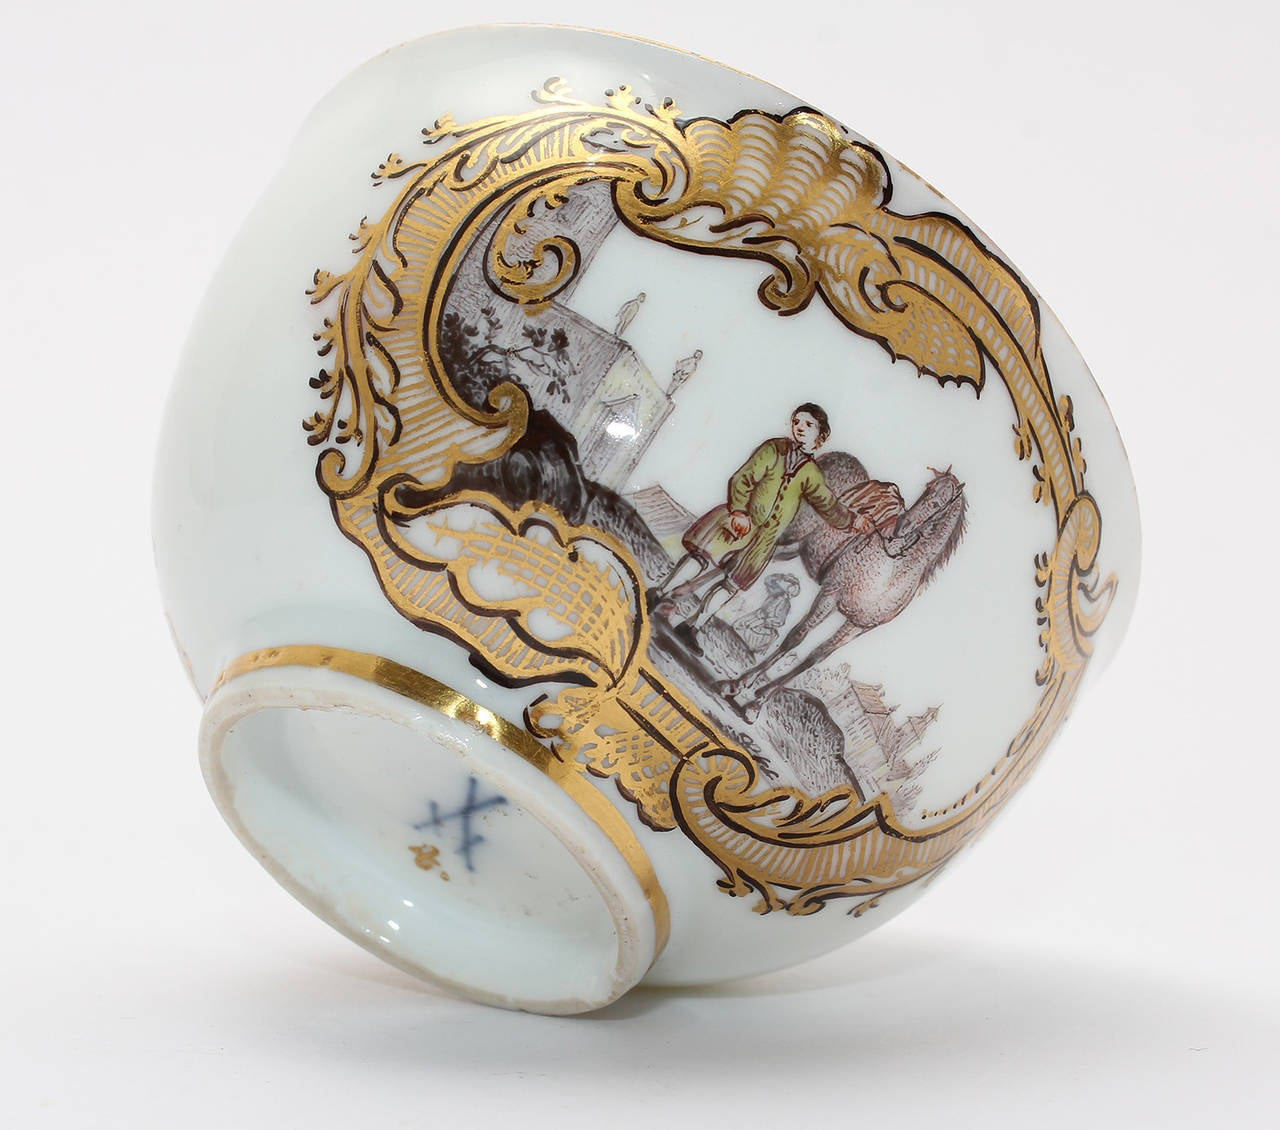 Porcelain Meissen Tea Bowl and Saucer, Equestrian Scene, circa 1745 For Sale